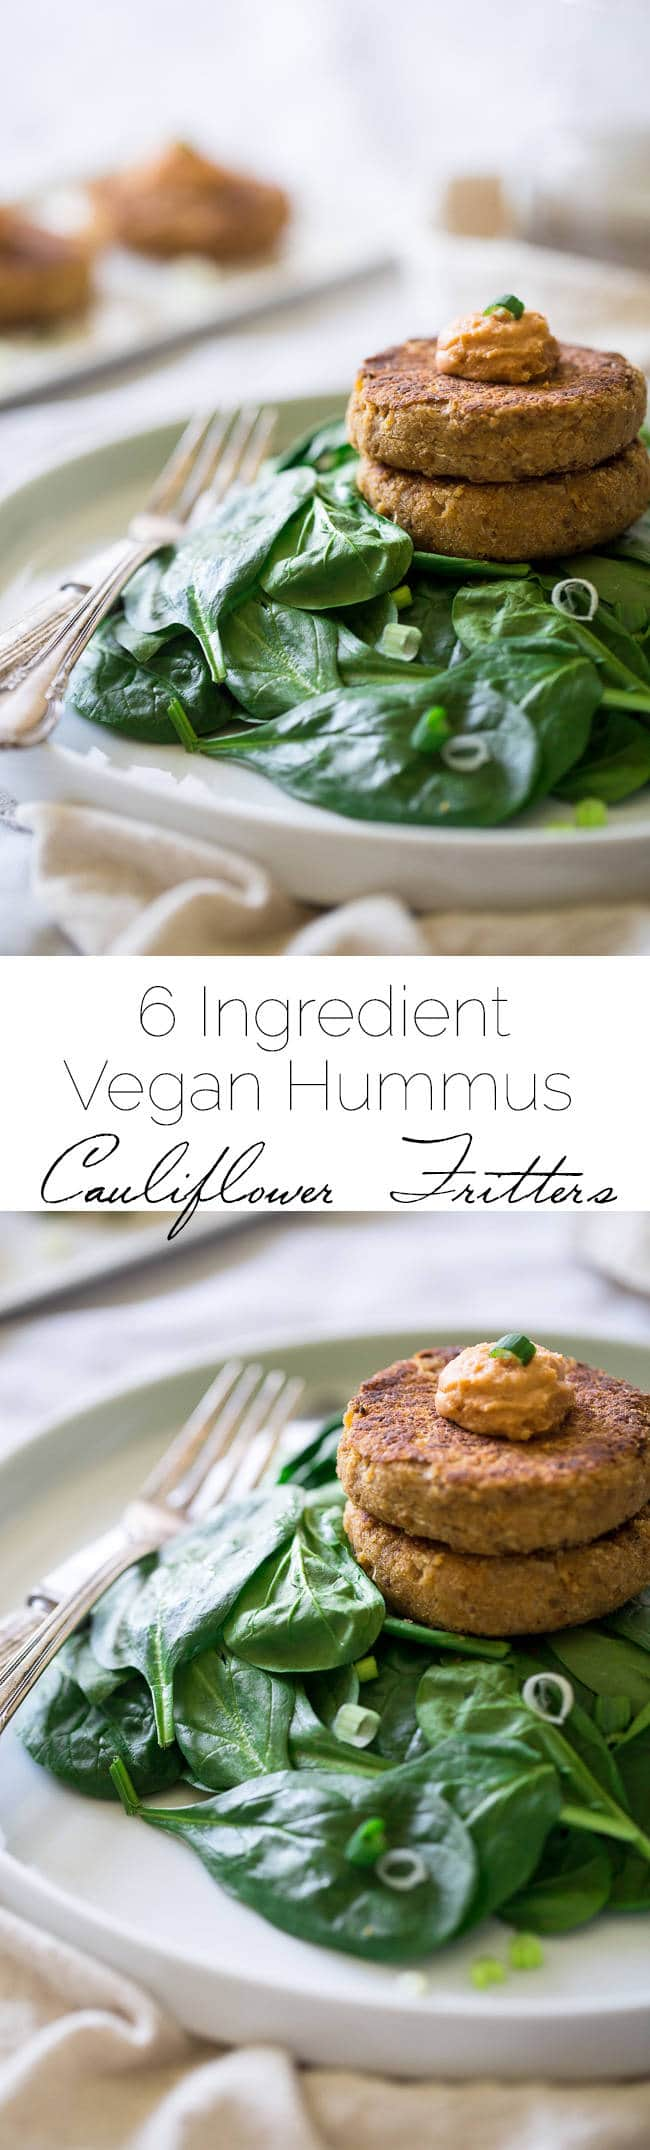 6 Ingredient Vegan Cauliflower Fritters With Hummus - Chickpeas and cauliflower are blended together, pan fried and topped with hummus so they're crispy on the outside and creamy on the inside. A quick, easy and healthy meatless Monday meal for under 350 calories! | Foodfaithfitness.com | @FoodFaithFit